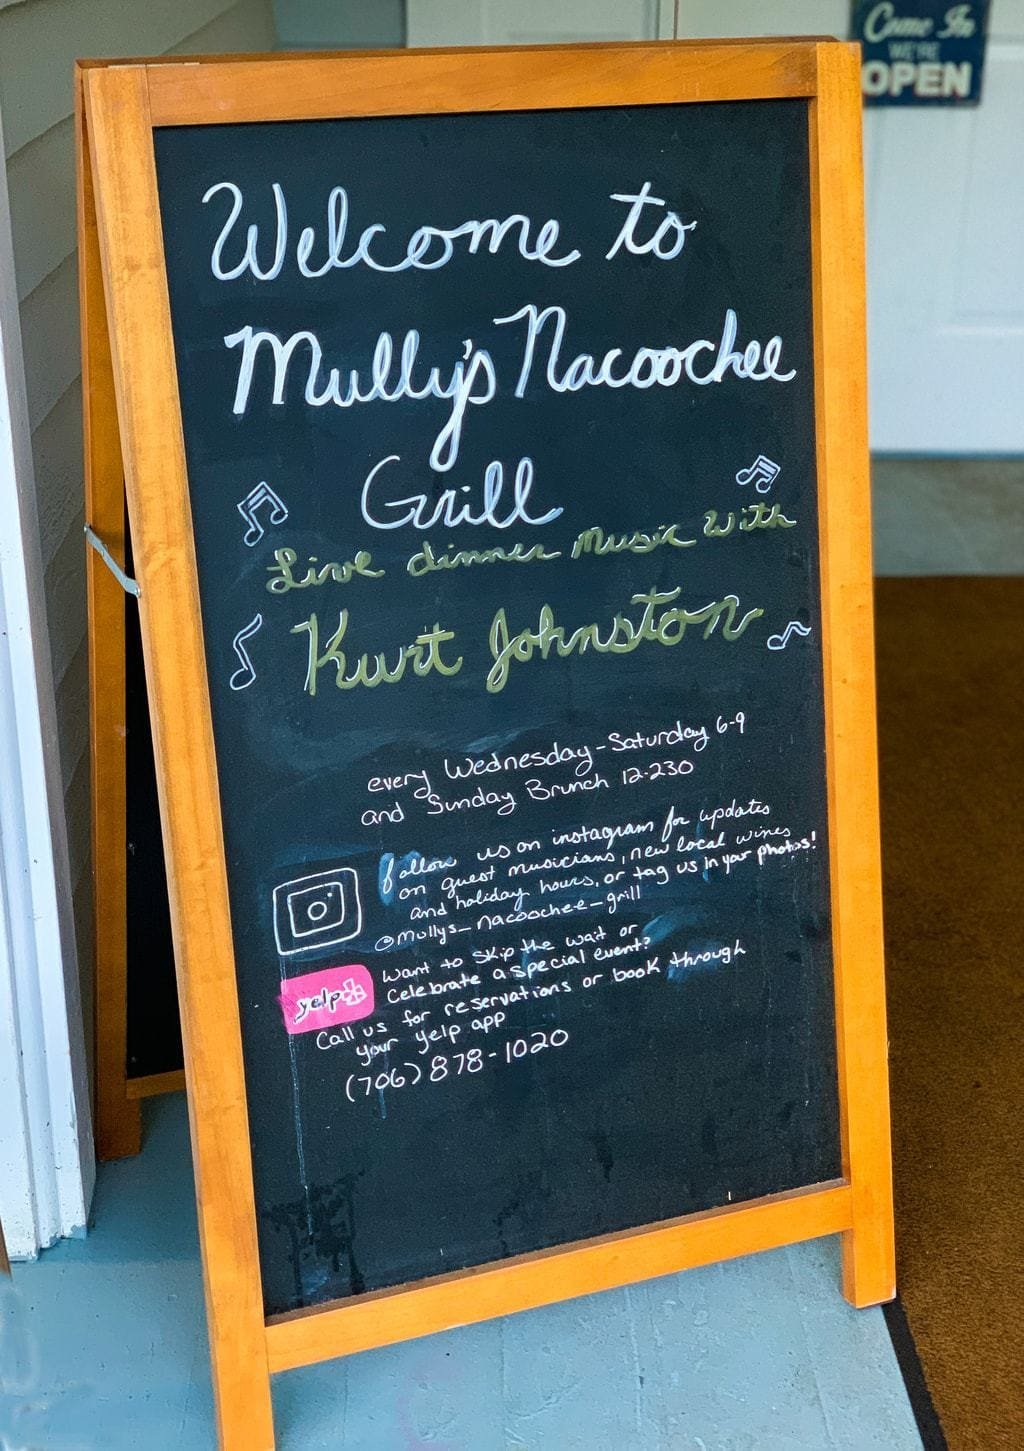 Live Music and entertainment at Mully's Nacoochee Grill in Helen, GA